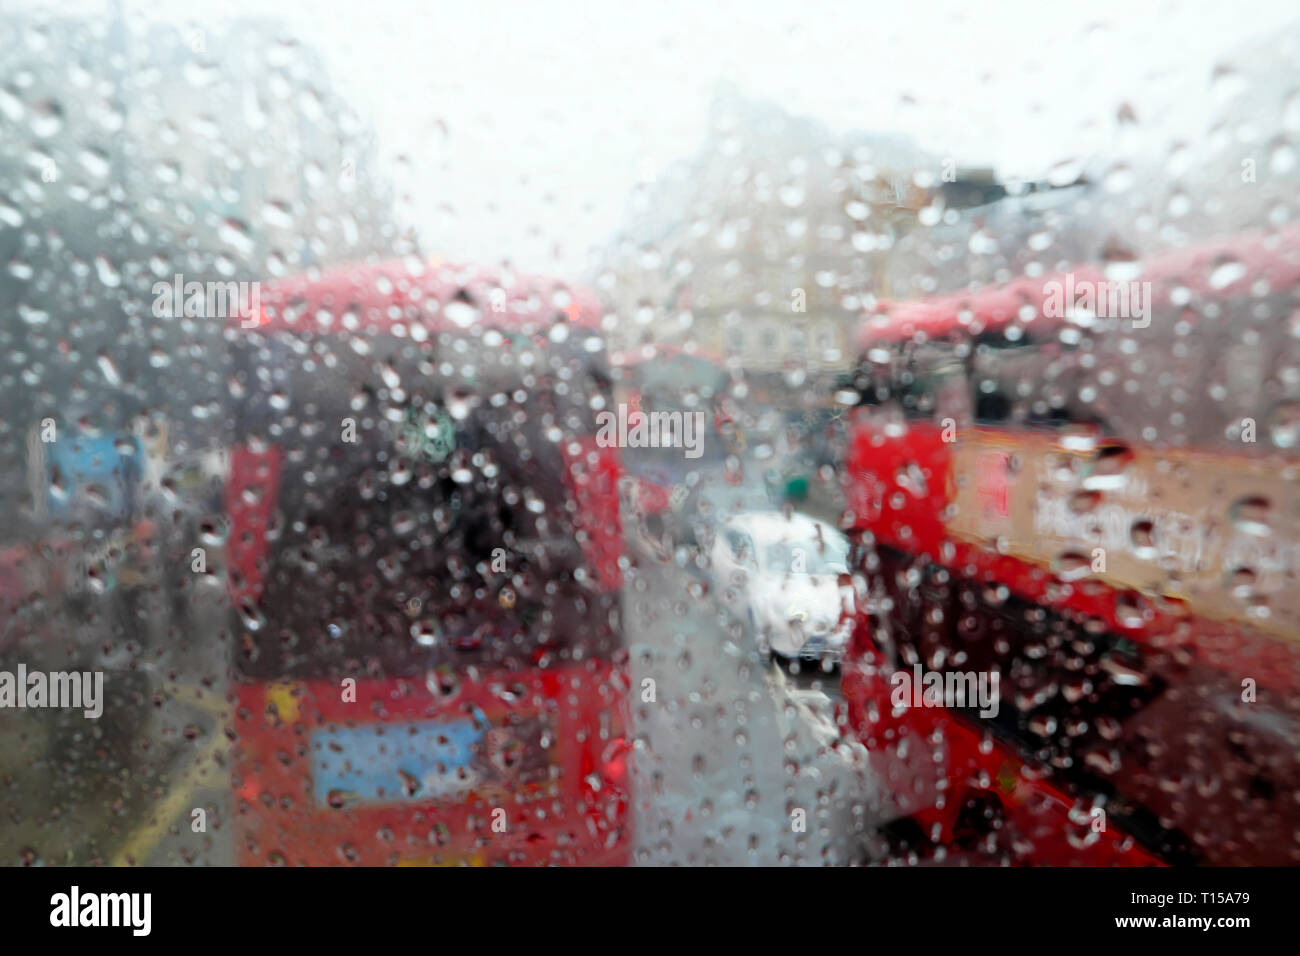 A view of double decker red buses in traffic view from top of bus interior raindrops on window on rainy day in London England UK  KATHY DEWITT Stock Photo